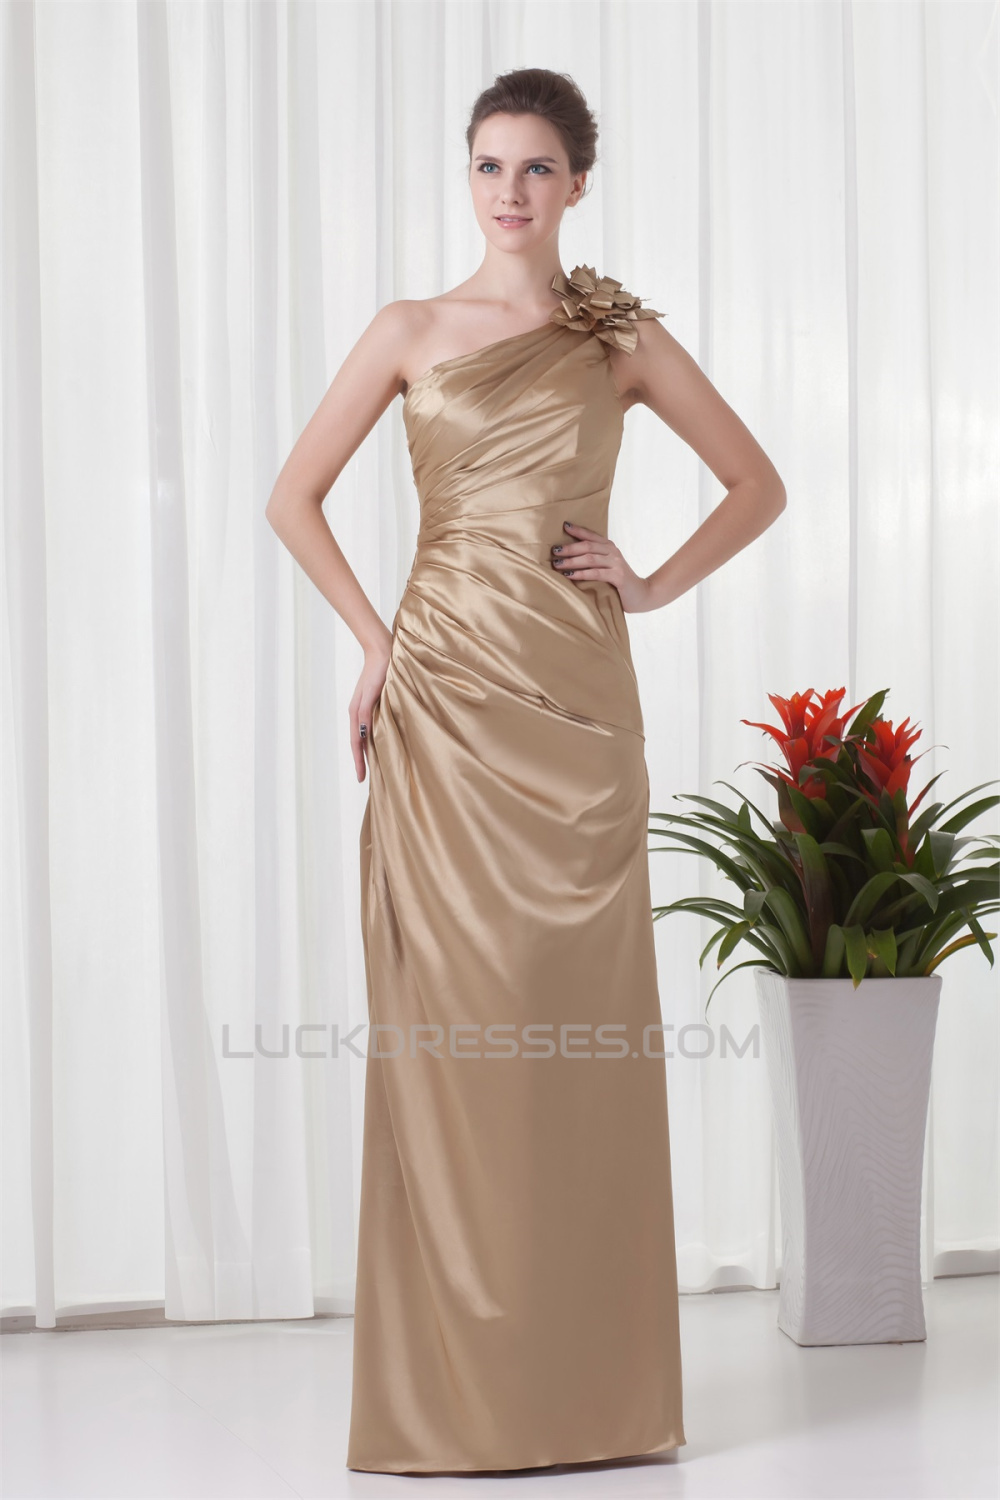 Buy Satin Woven bridesmaid homecoming dresses picture trends